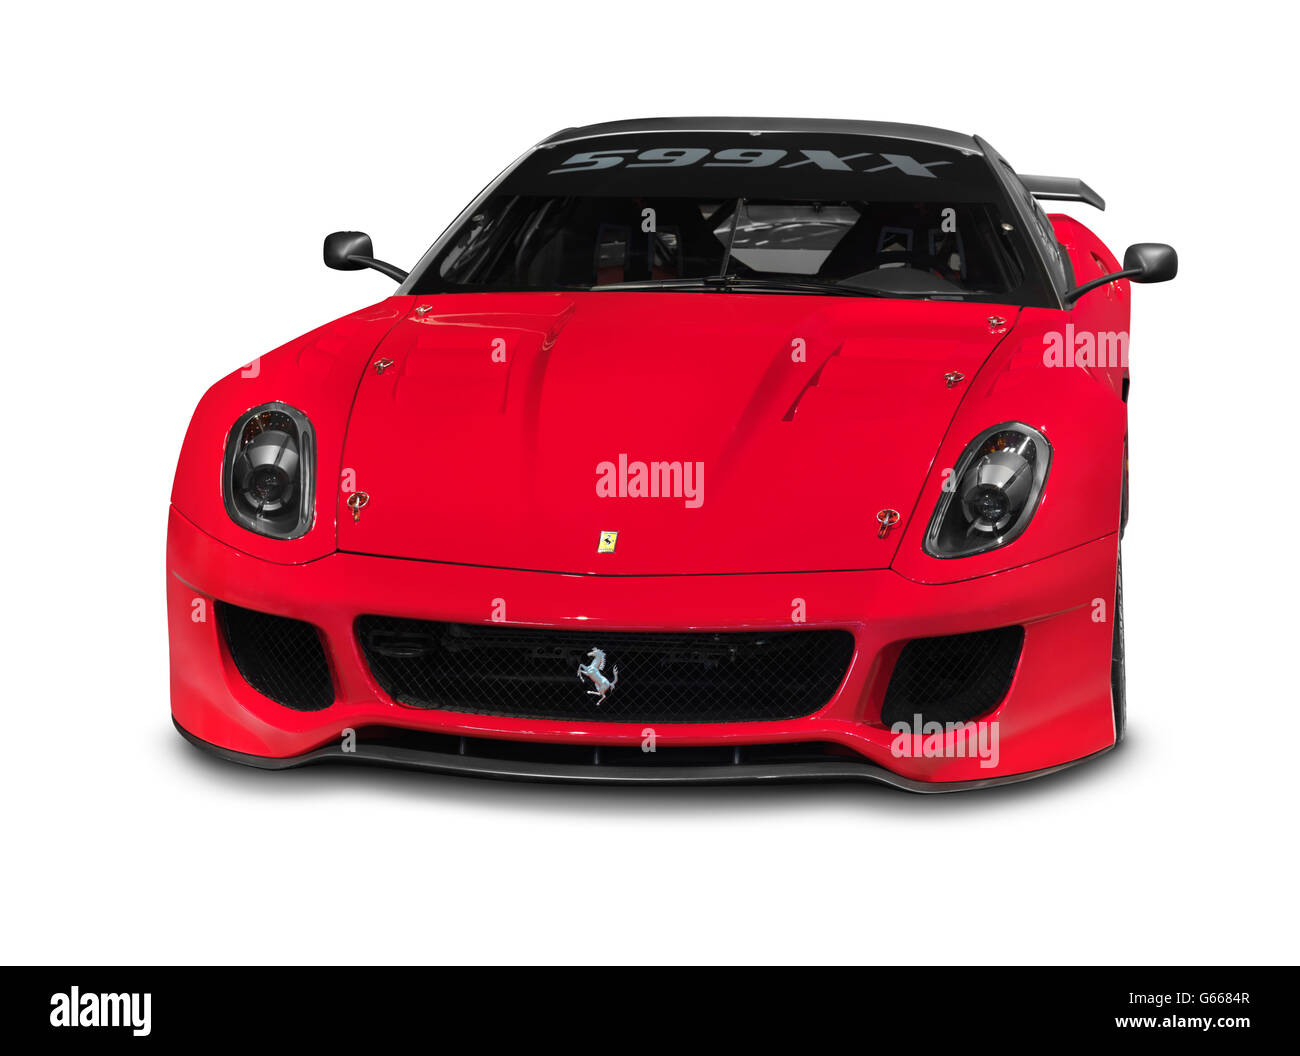 2010 Red Ferrari 599XX sports car, in production from 2009 - Stock Image